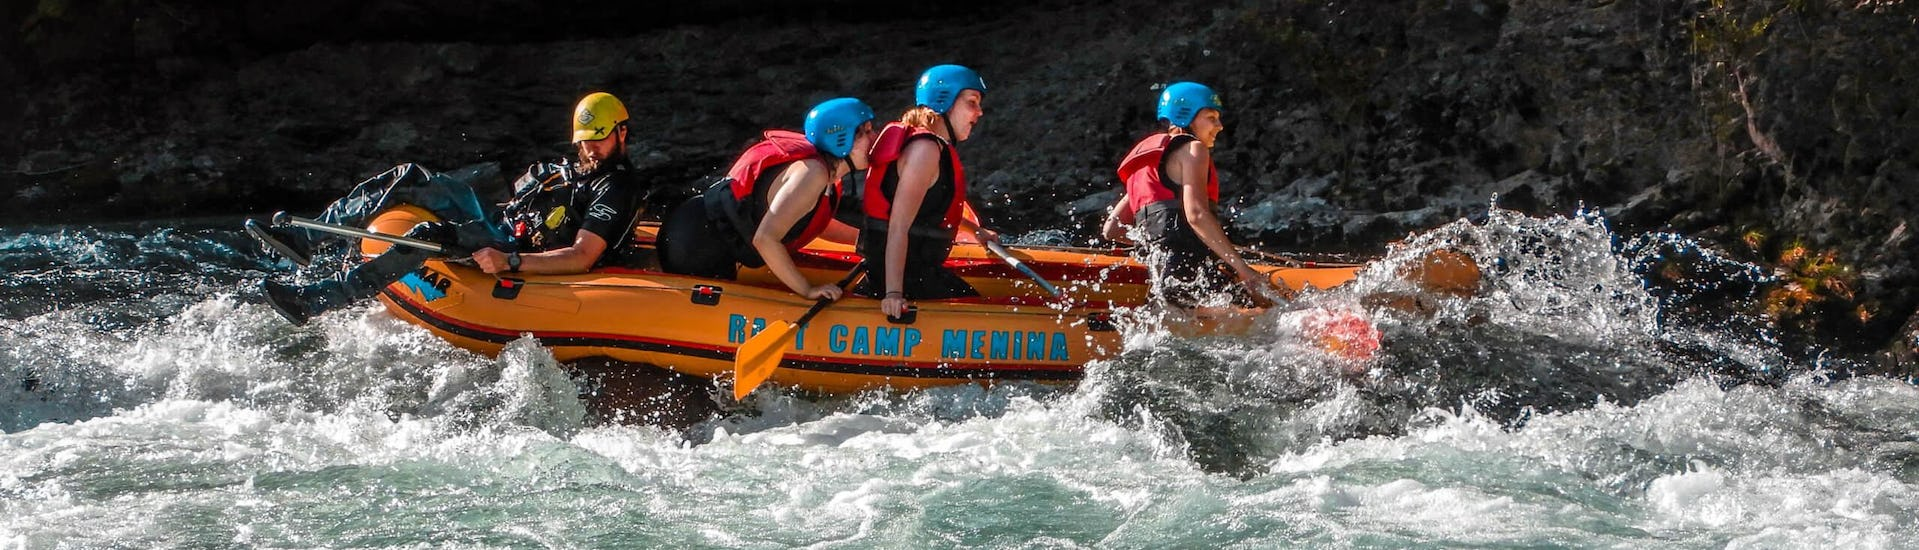 "In full action during Rafting ""Classic"" - Savinja organized by Funpark Menina"